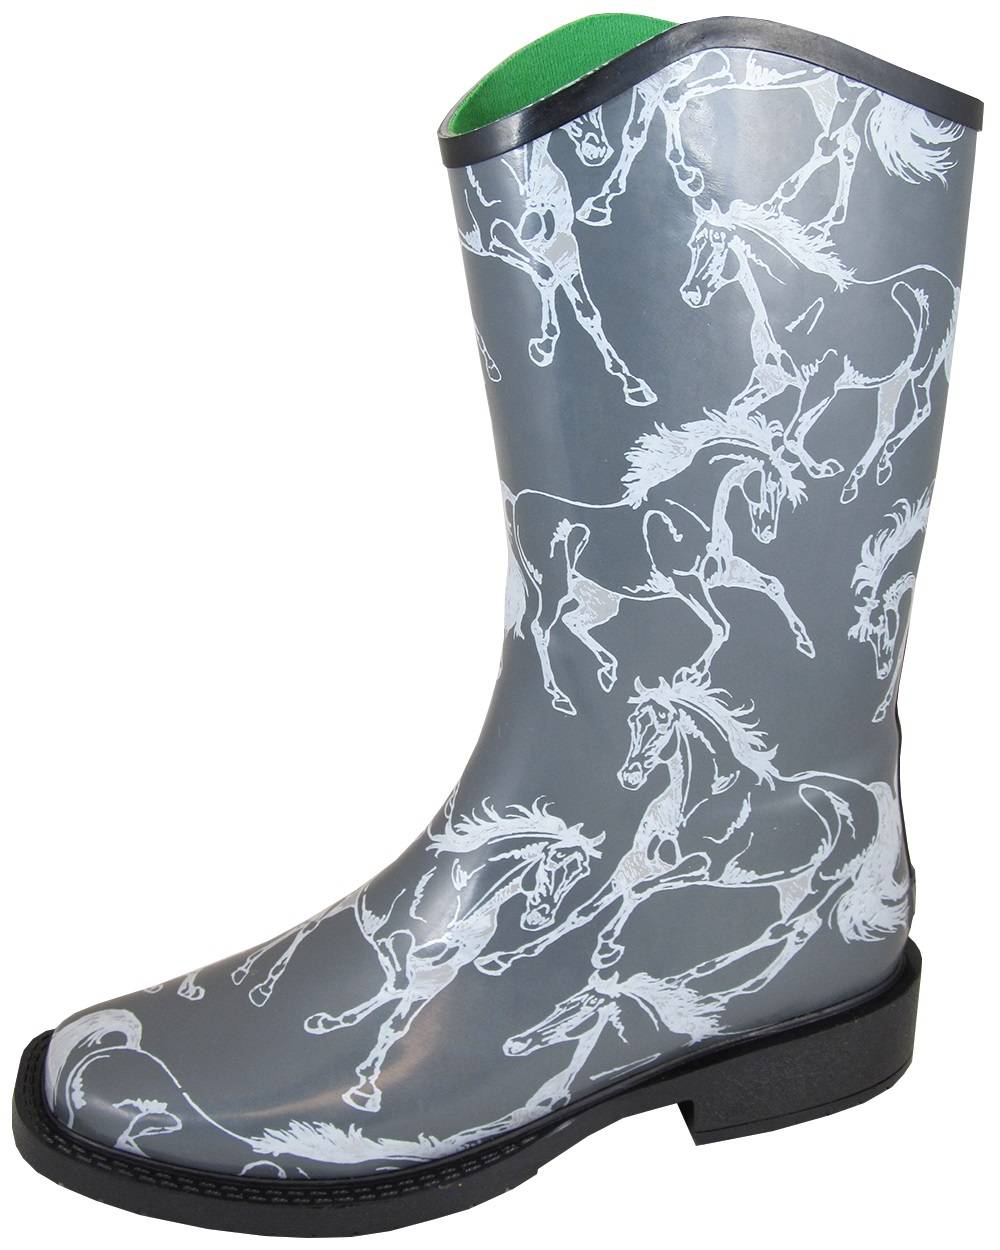 Smoky Mountain Ozark Boots - Ladies - Grey Horses